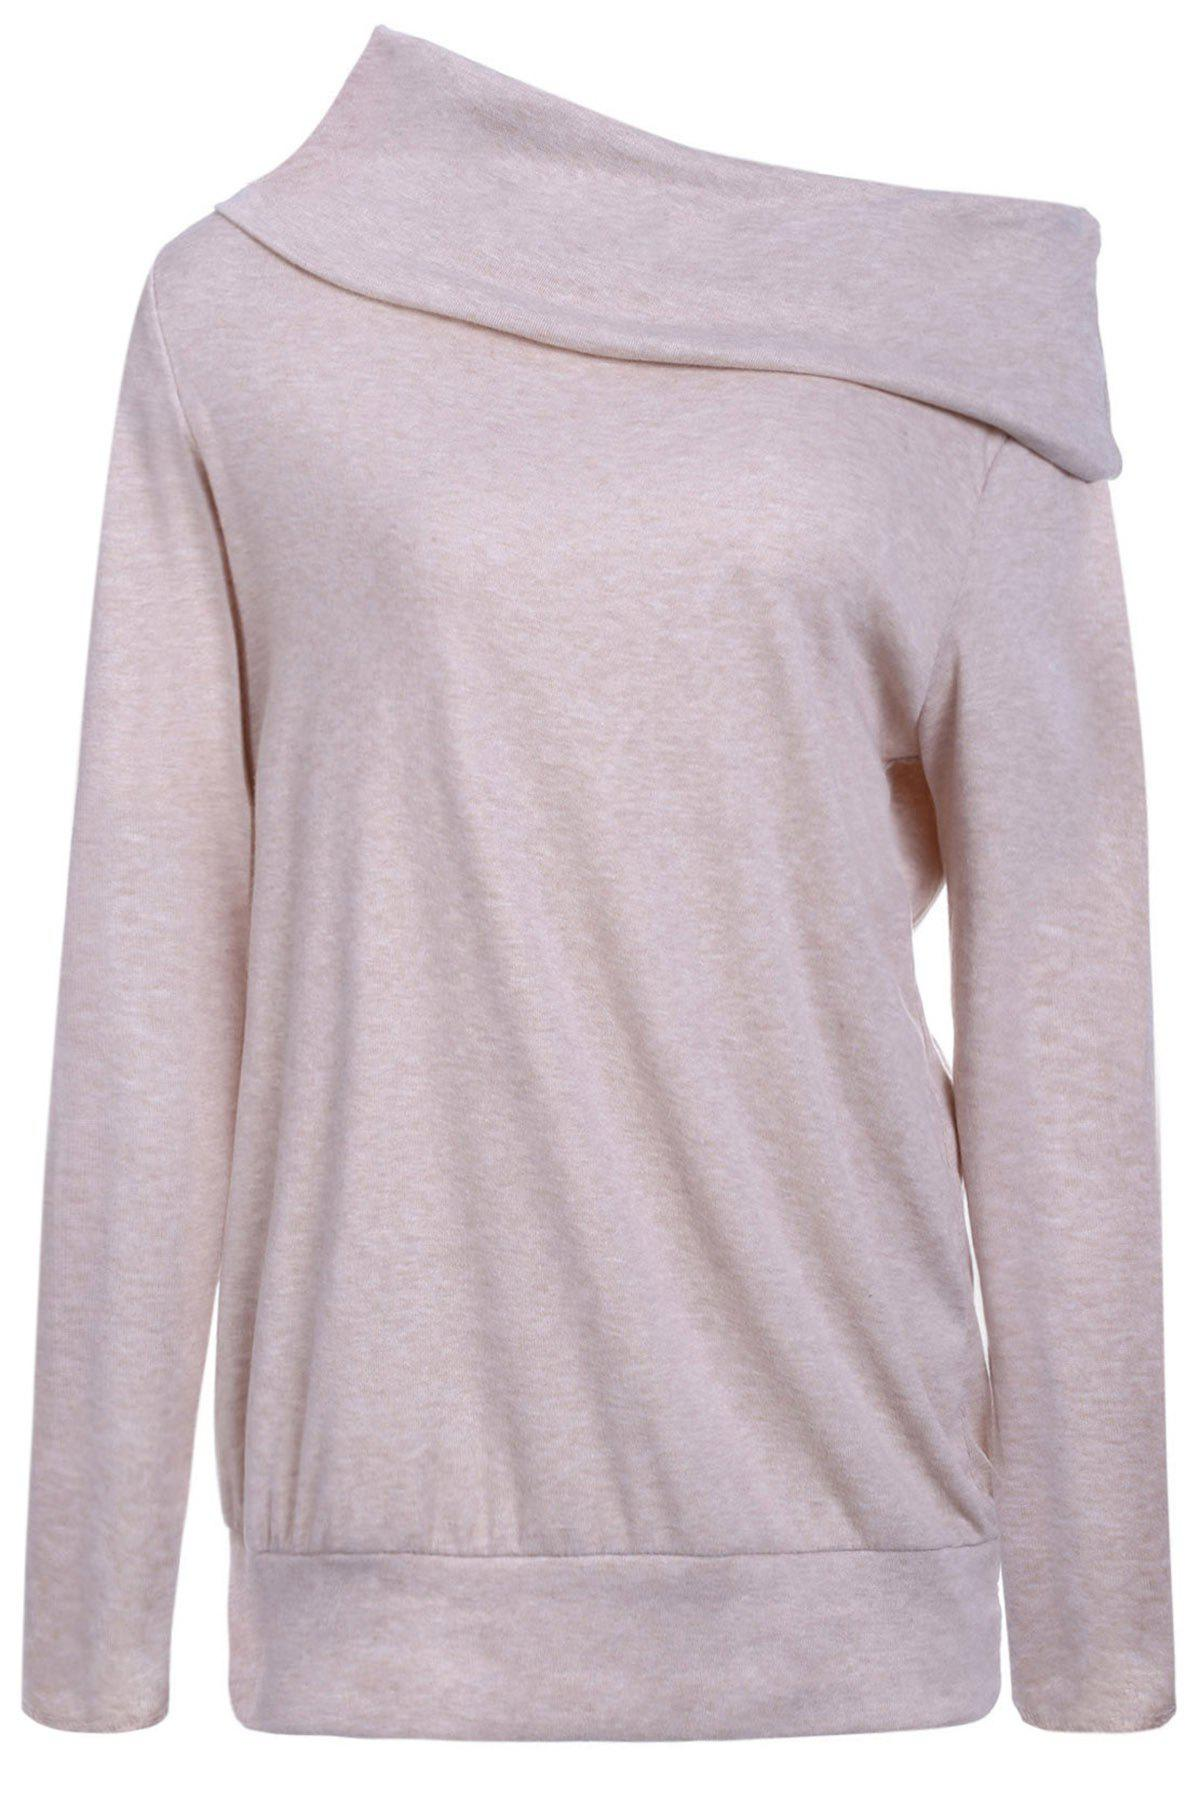 Multiway Off The Shoulder T-Shirt - LIGHT PURPLE M